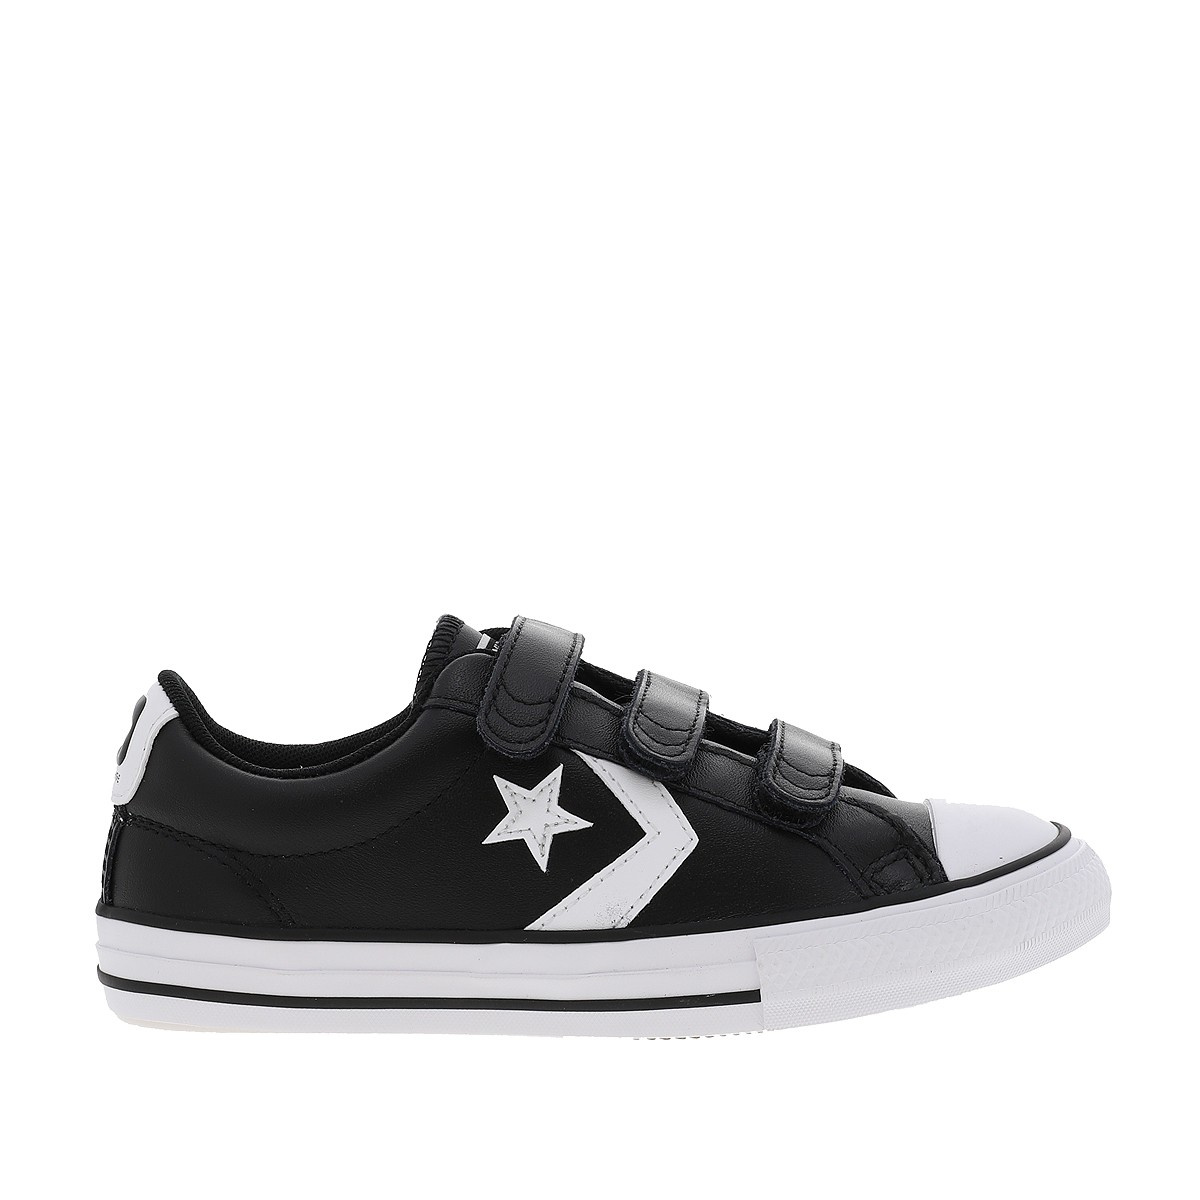 Player Garçon Baskets Converse Noir Star dCerBxo